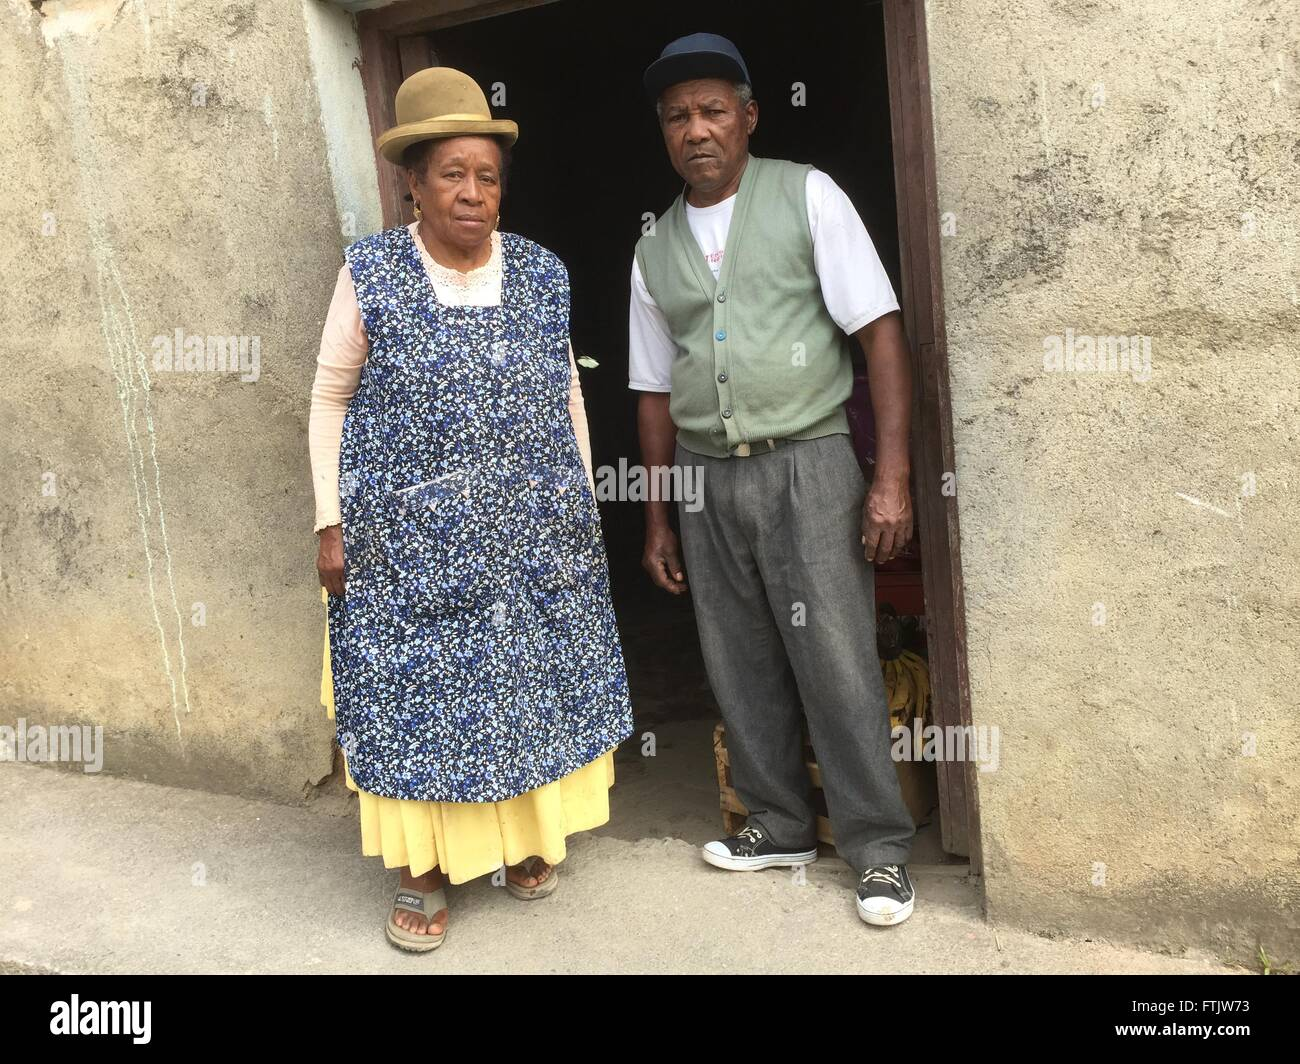 Mururata, Bolivia. 19th Jan, 2016. King Julio and his wife Angelica standing outside their home in the village of - Stock Image